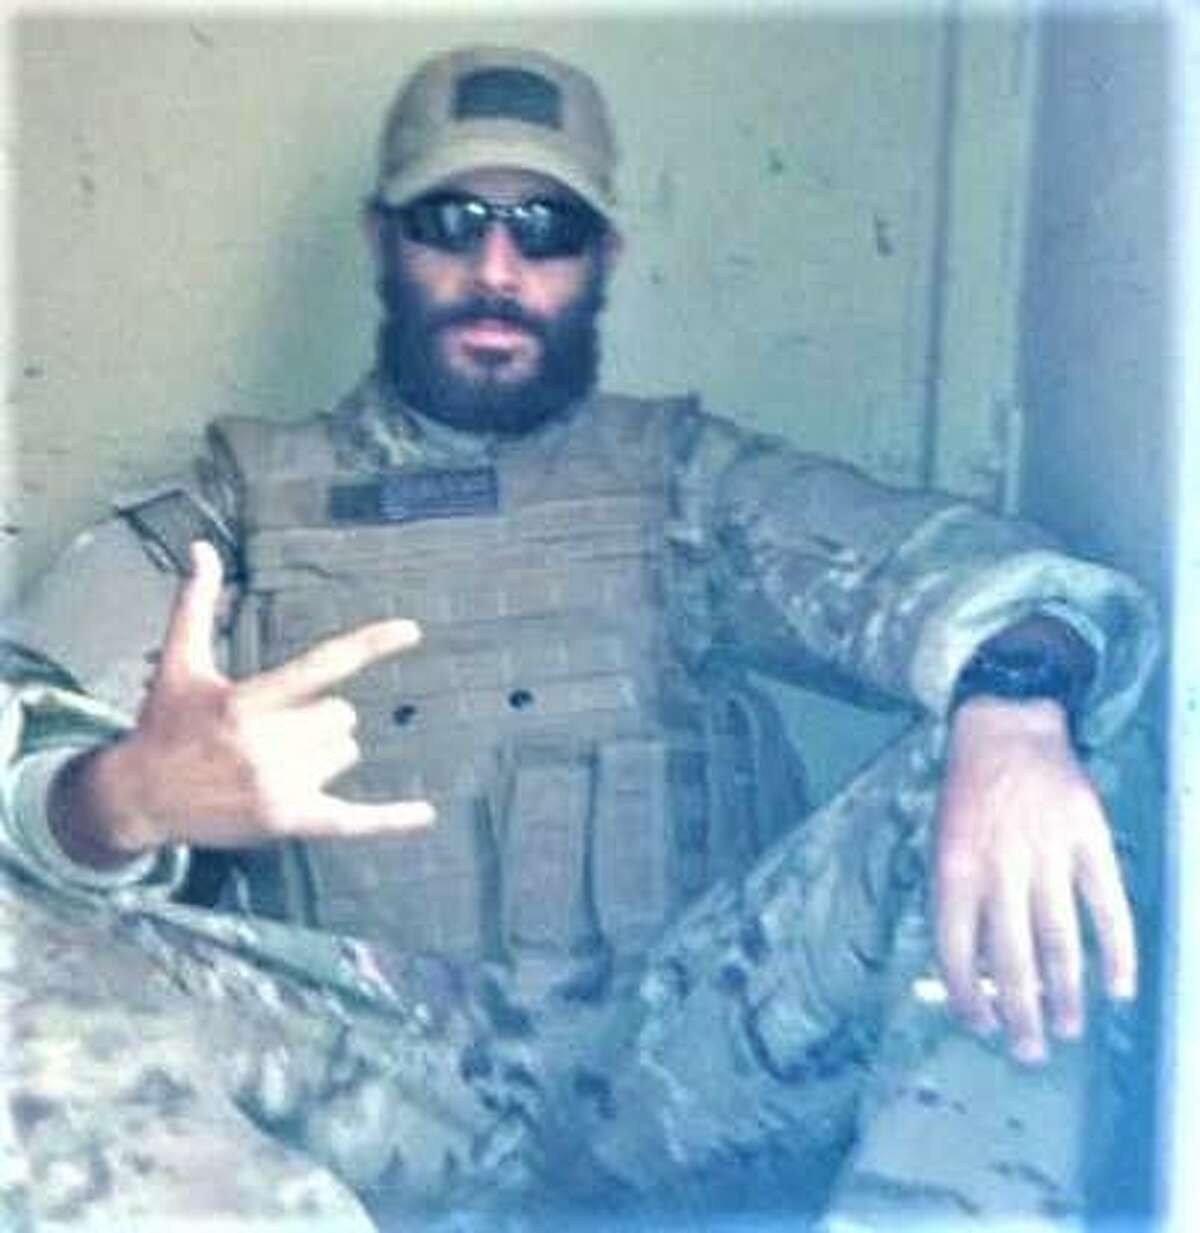 Alex Plitsas, chairman of the Fairfield Republican Town Committee, during a deployment to Afghanistan in 2012 as a defense civilian intelligence officer, after a tour of duty with the Army in Iraq.